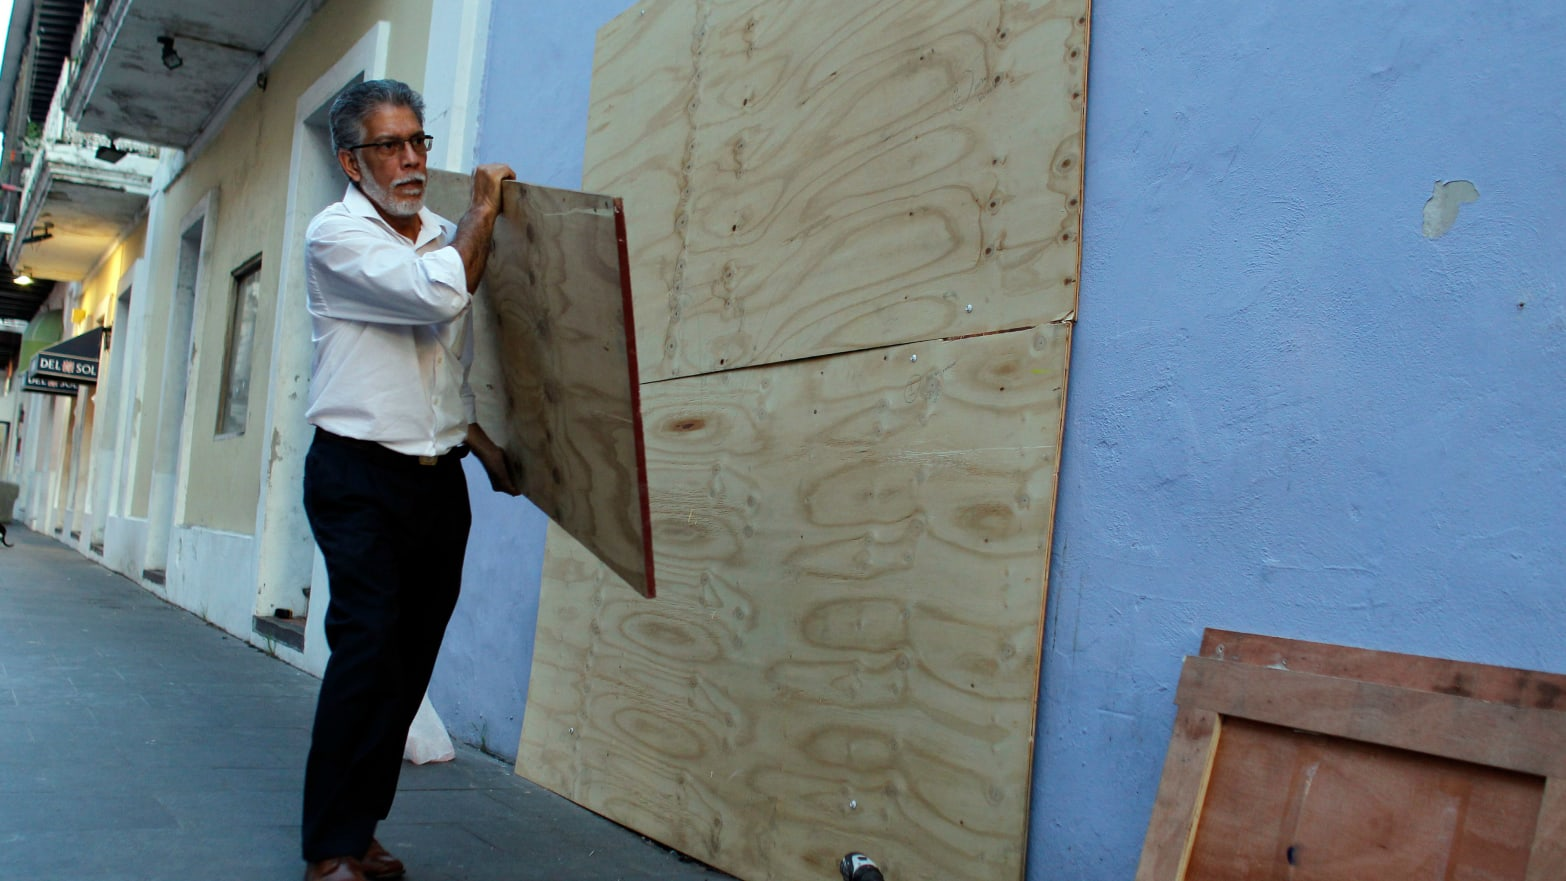 A man boards up windows of a business in preparation for Hurricane Maria in San Juan, Puerto Rico